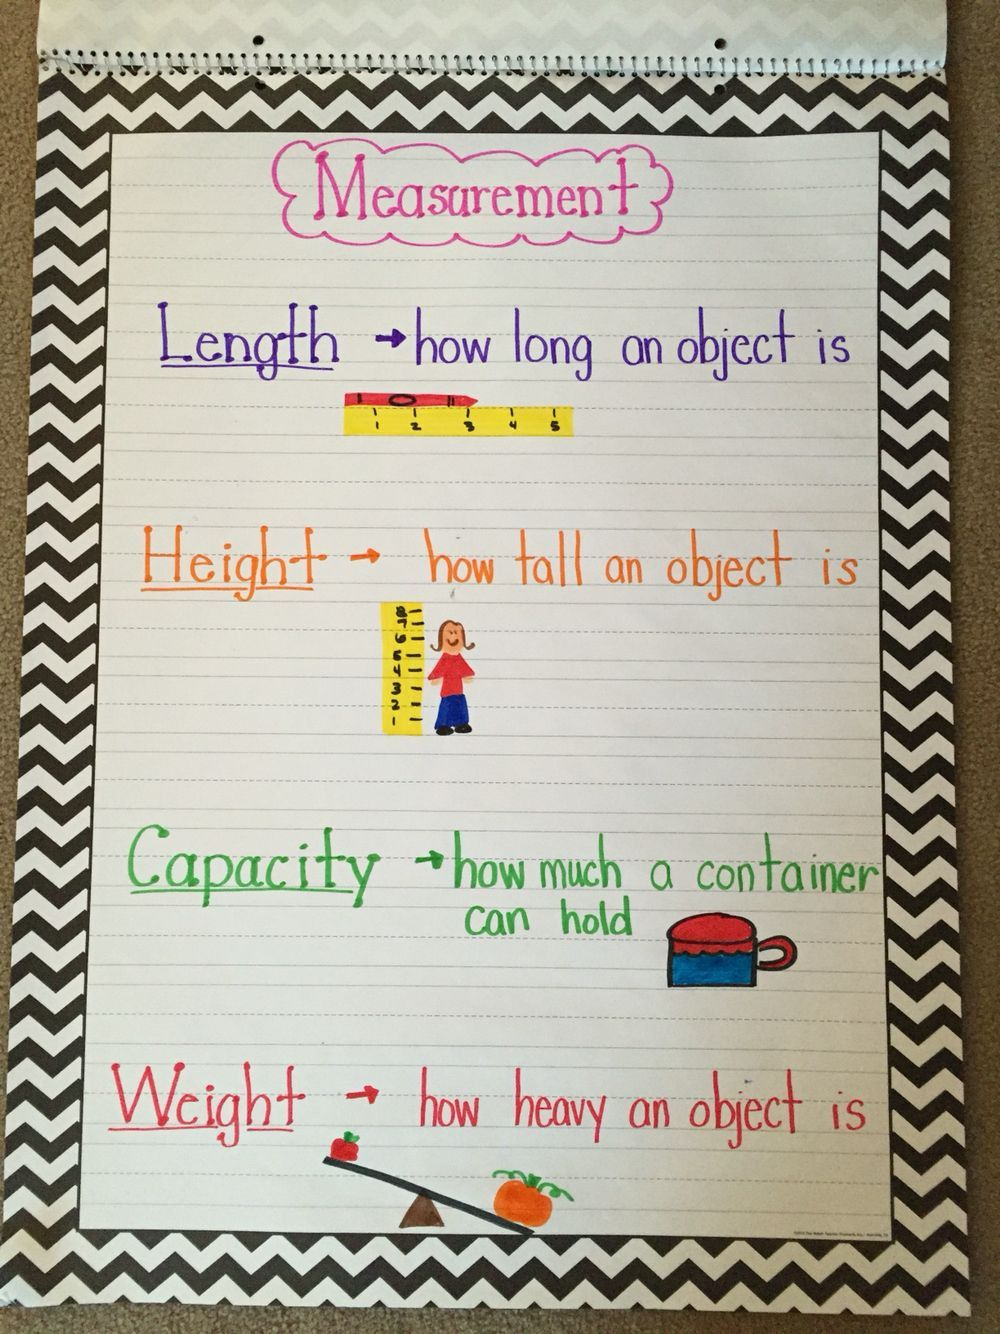 Worksheets Which Unit Of Measure 4 Worksheets Which Unit Of Measure Made This Chart Fo In 2020 Kindergarten Math Units Measurement Kindergarten Kindergarten Math [ 1334 x 1000 Pixel ]